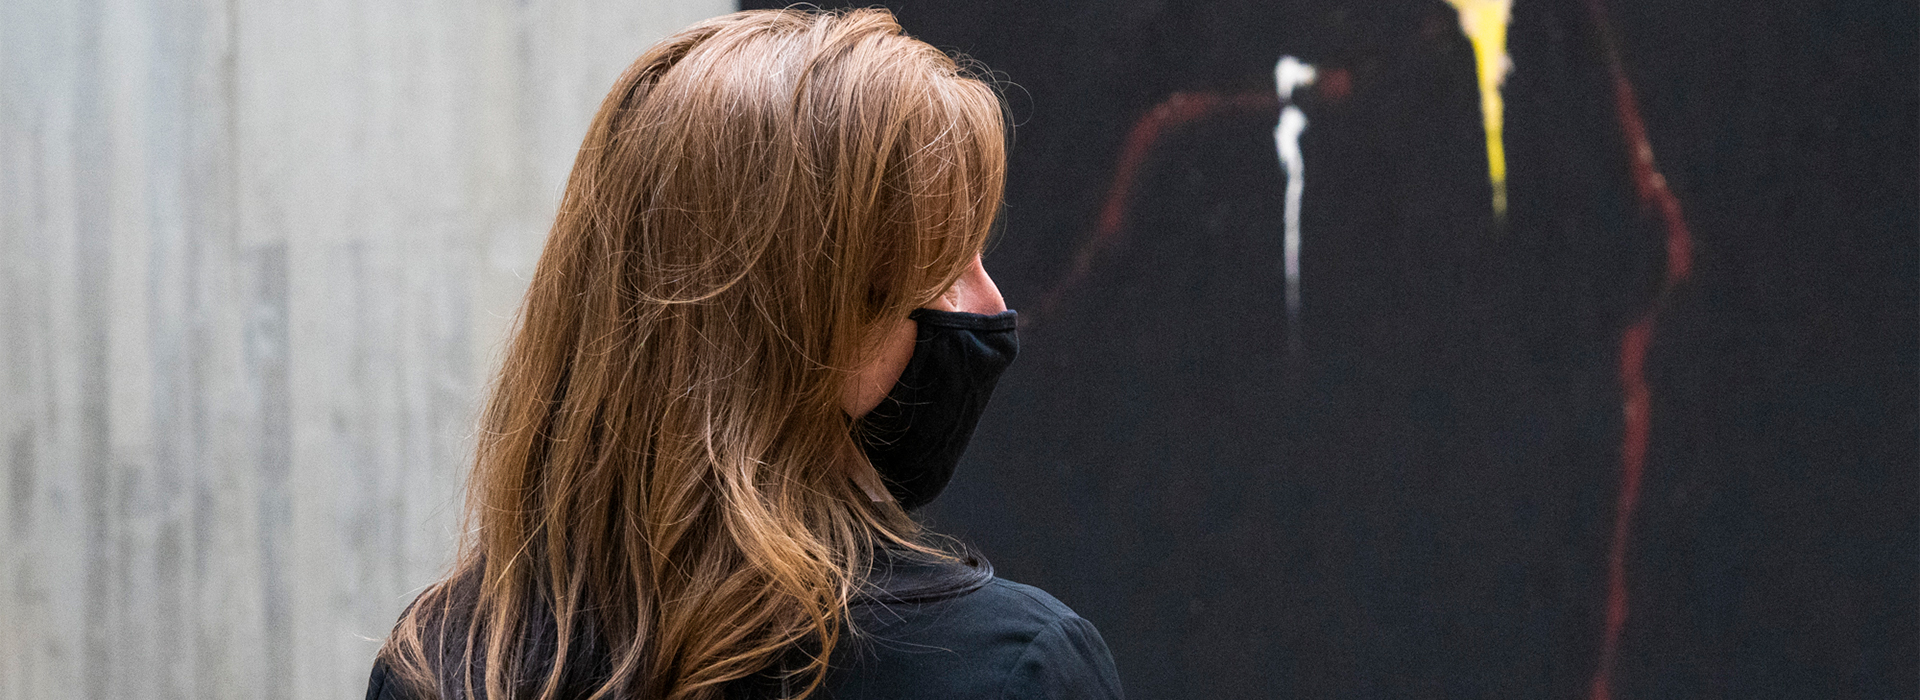 Side profile photo of a woman wearing a mask standing in front of a mostly black abstract painting by Clyfford Still